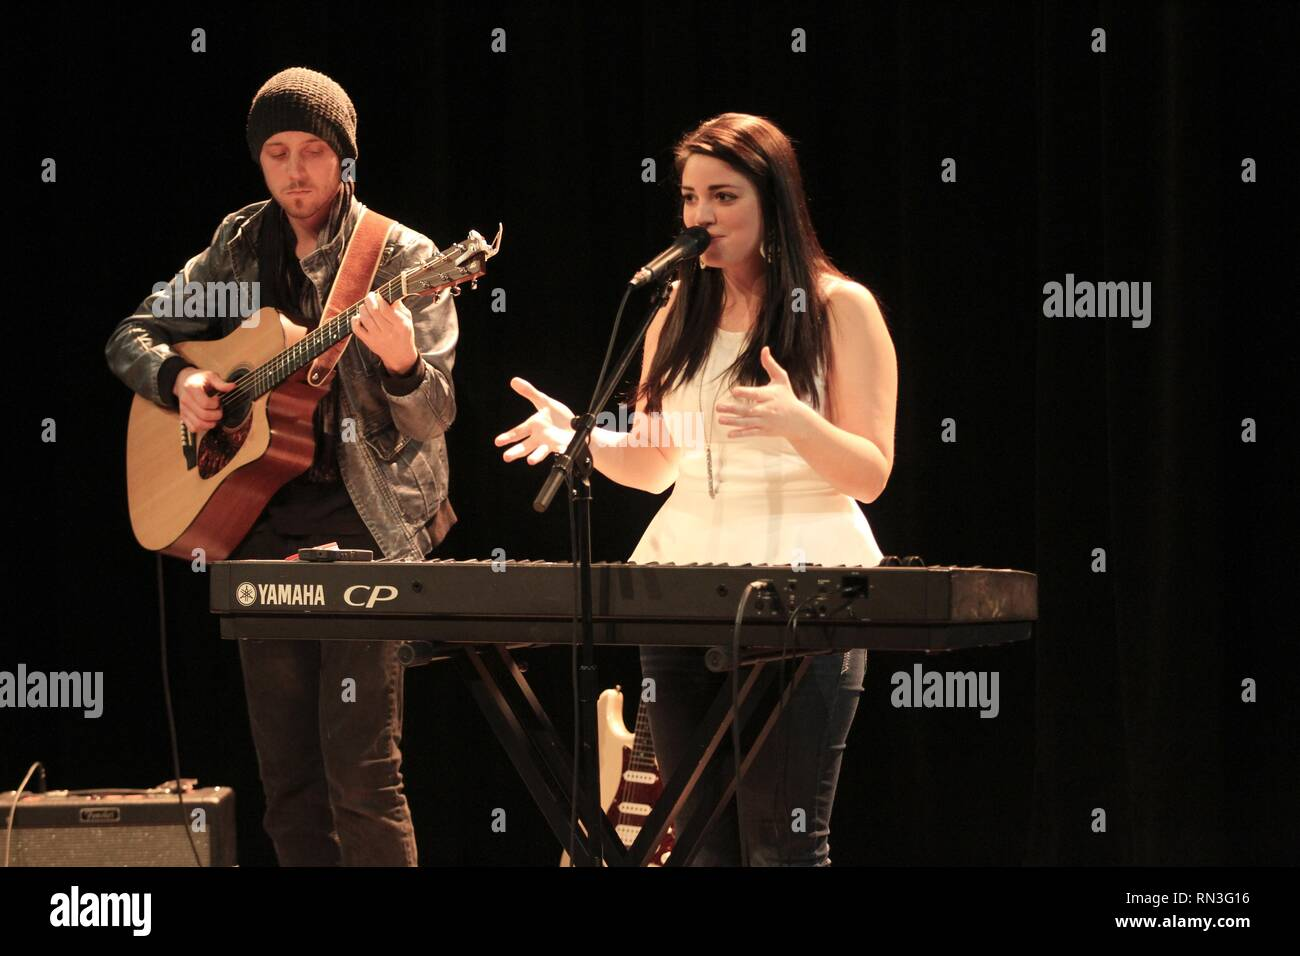 Musicians Alyssa Rose Coco and Matt Merritt are shown performing on stage during a 'live' concert appearance as Roses and Revolutions. - Stock Image